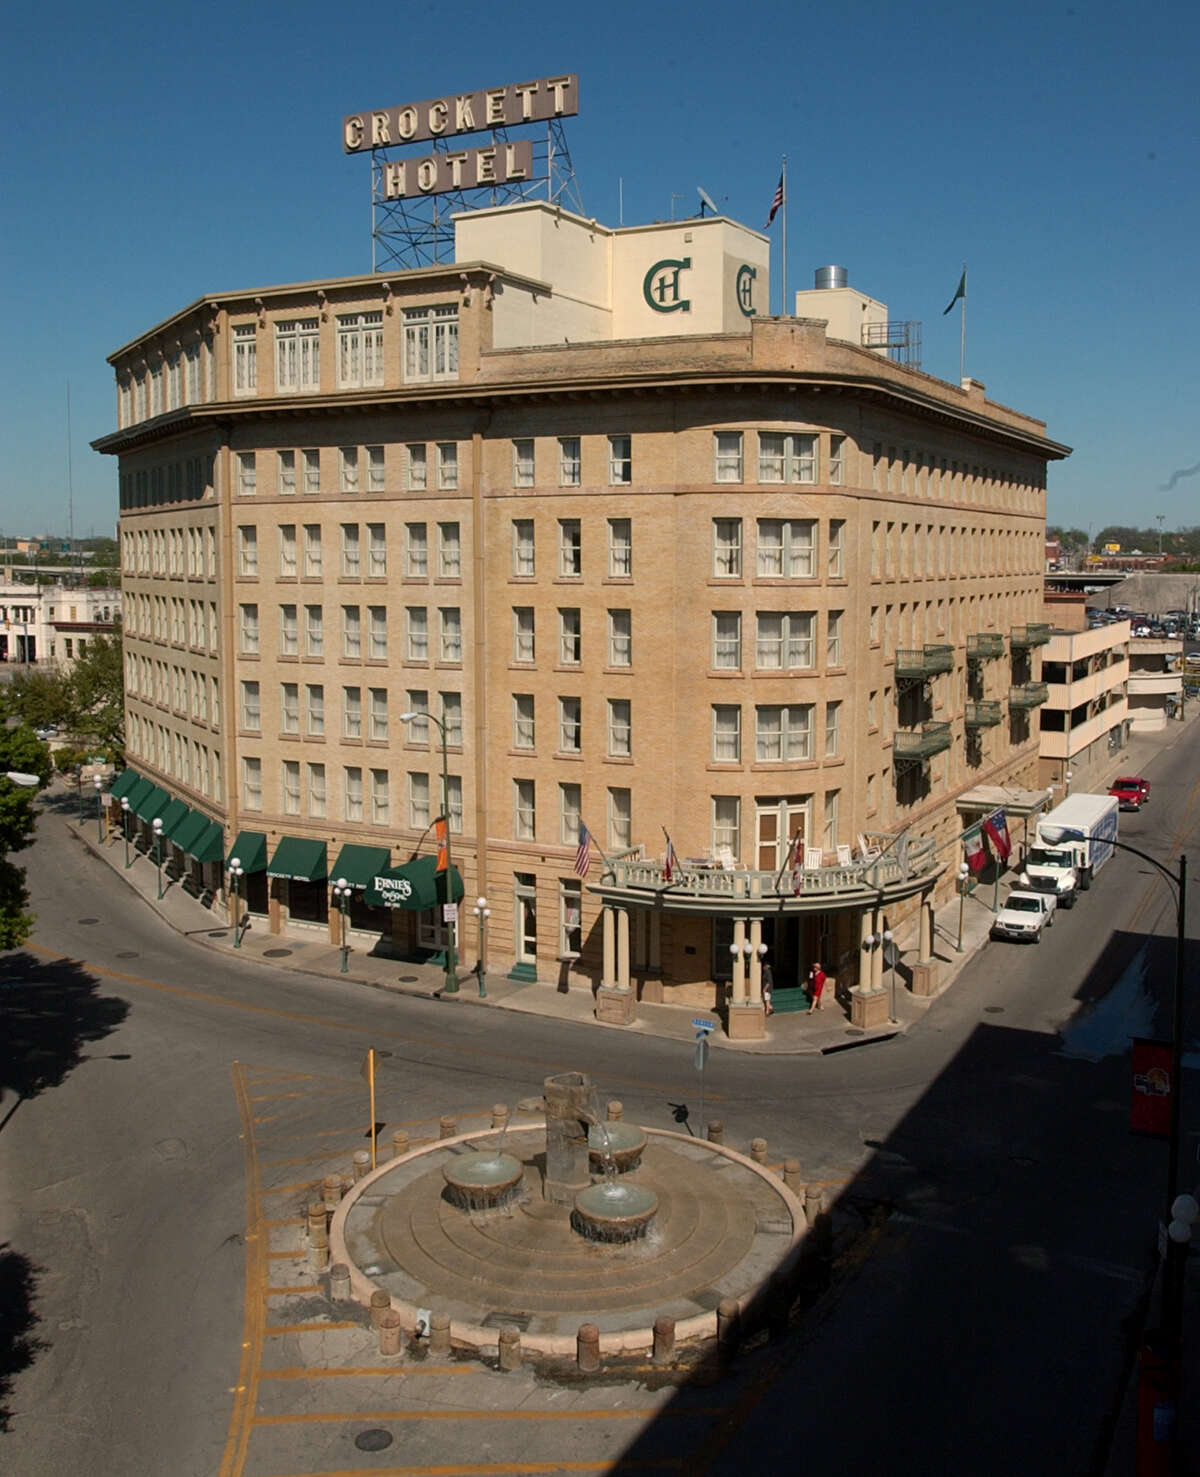 The Crockett Hotel, photographed in 2004.